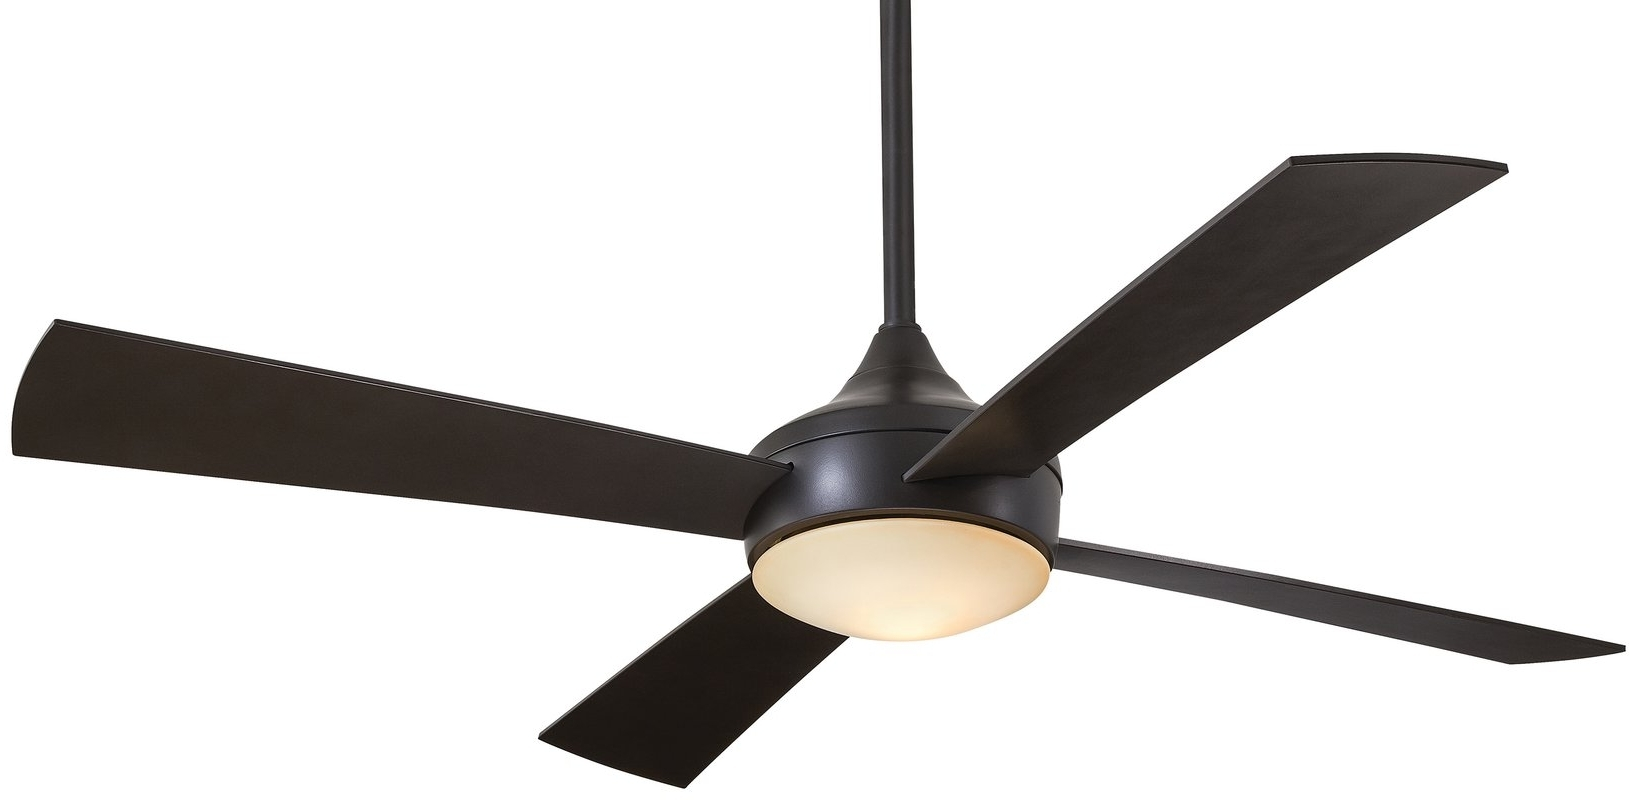 High Output Outdoor Ceiling Fans For Well Known Outdoor Ceiling Fans You'll Love (View 14 of 20)